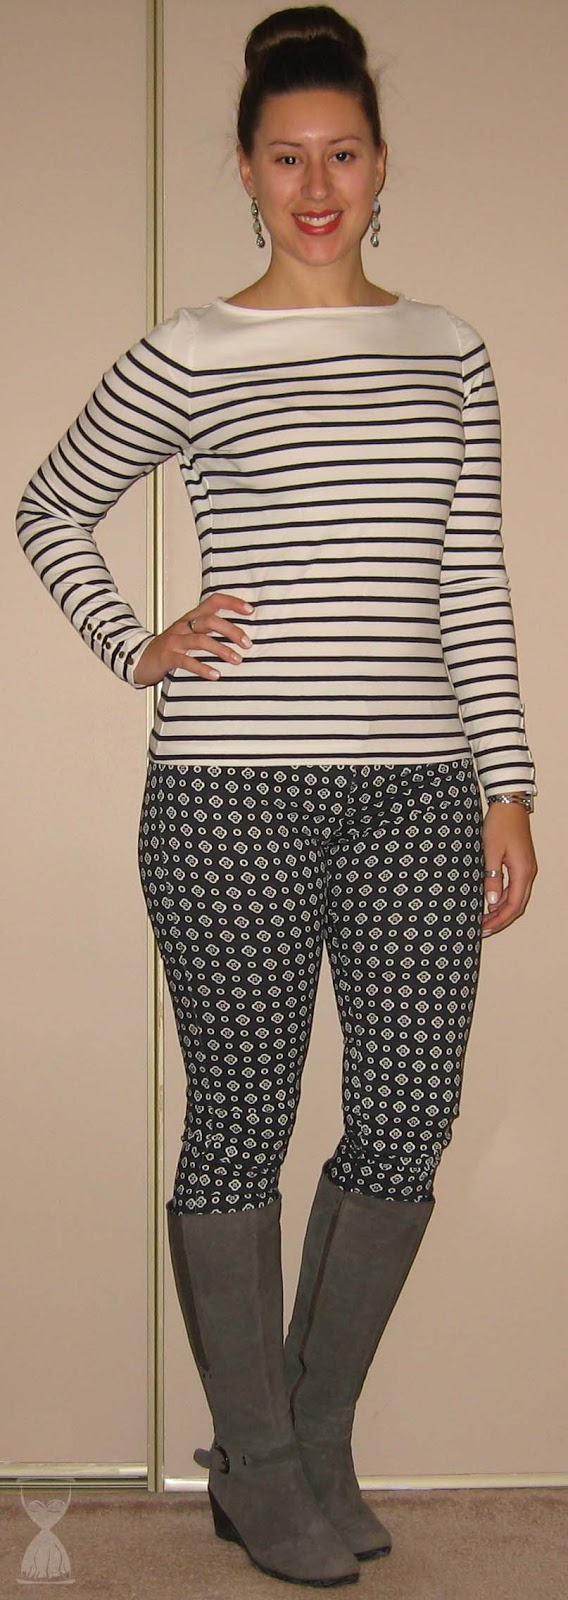 COUTURE DU JOUR by Mimi  TBT - Spots and Stripes 4fc18f8389f